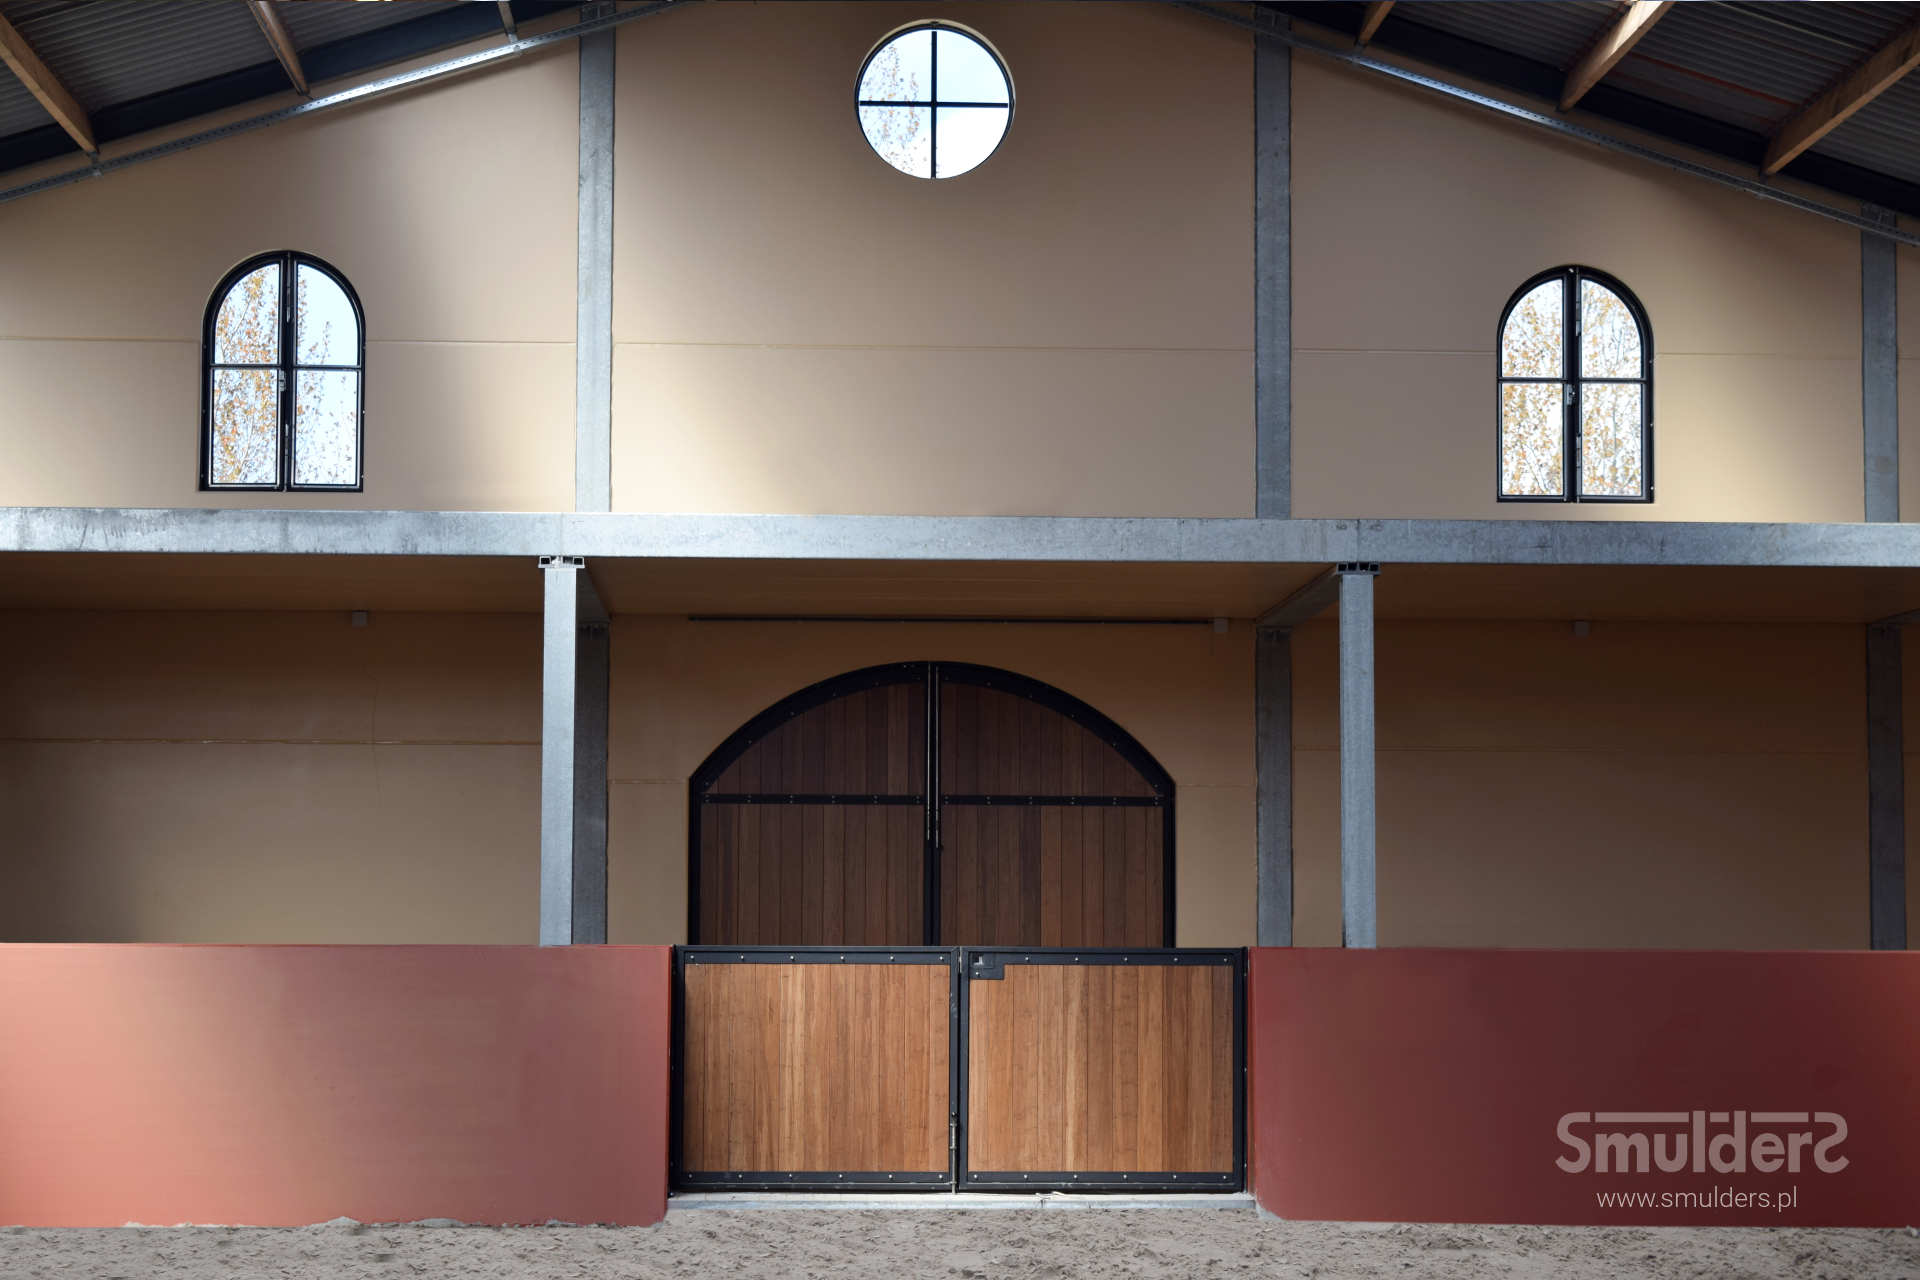 http://www.smulders.pl/wp-content/uploads/2019/03/f006_internal-stables_windsor_doors_windows_barn-doors_PRSH_SMULDERS_PL.jpg